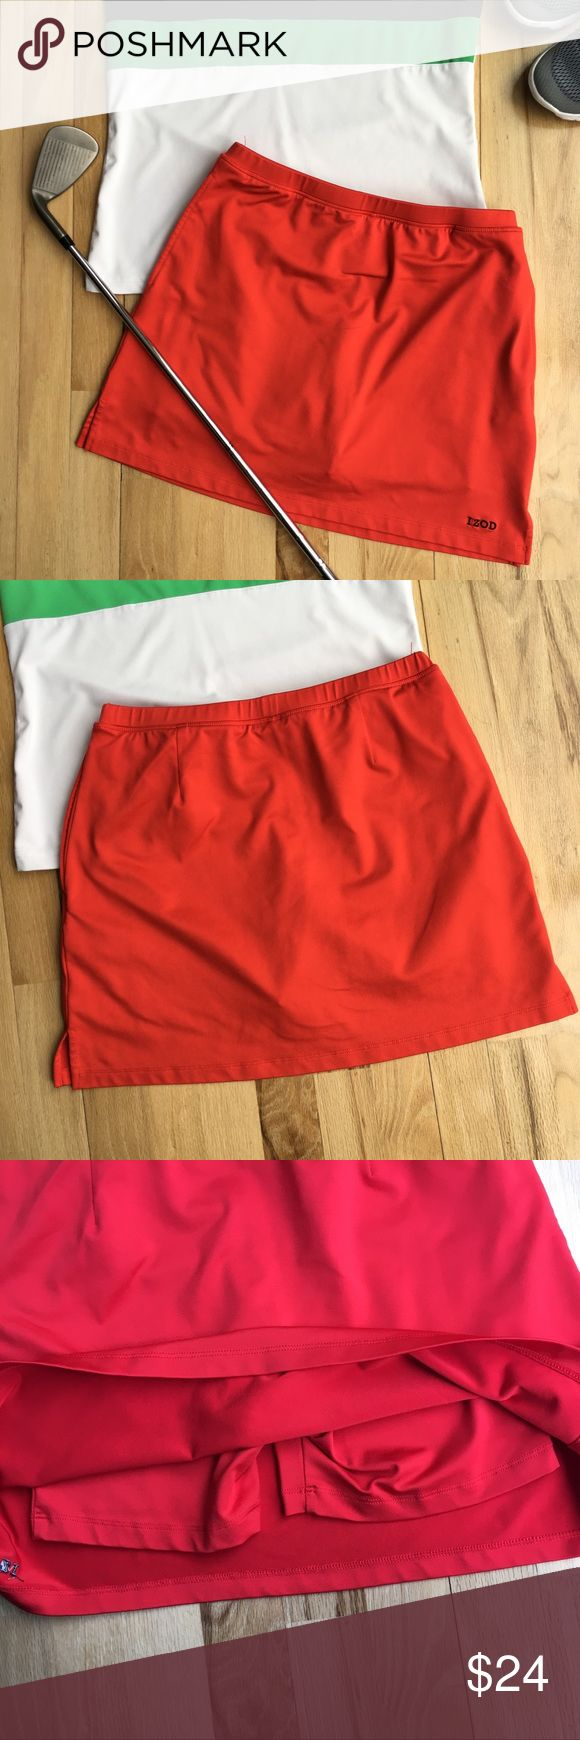 IZOD Cool FX Red Golf Athletic Skirt IZOD Cool FX Red Athletic Skirt with Pockets and built in under shorts. Super cute for the tennis court or golf course this spring! Excellent condition. 90% polyester 10% Spandex. Machine wash/dry. Measures 13in across at waist, 14in length. Izod Skirts